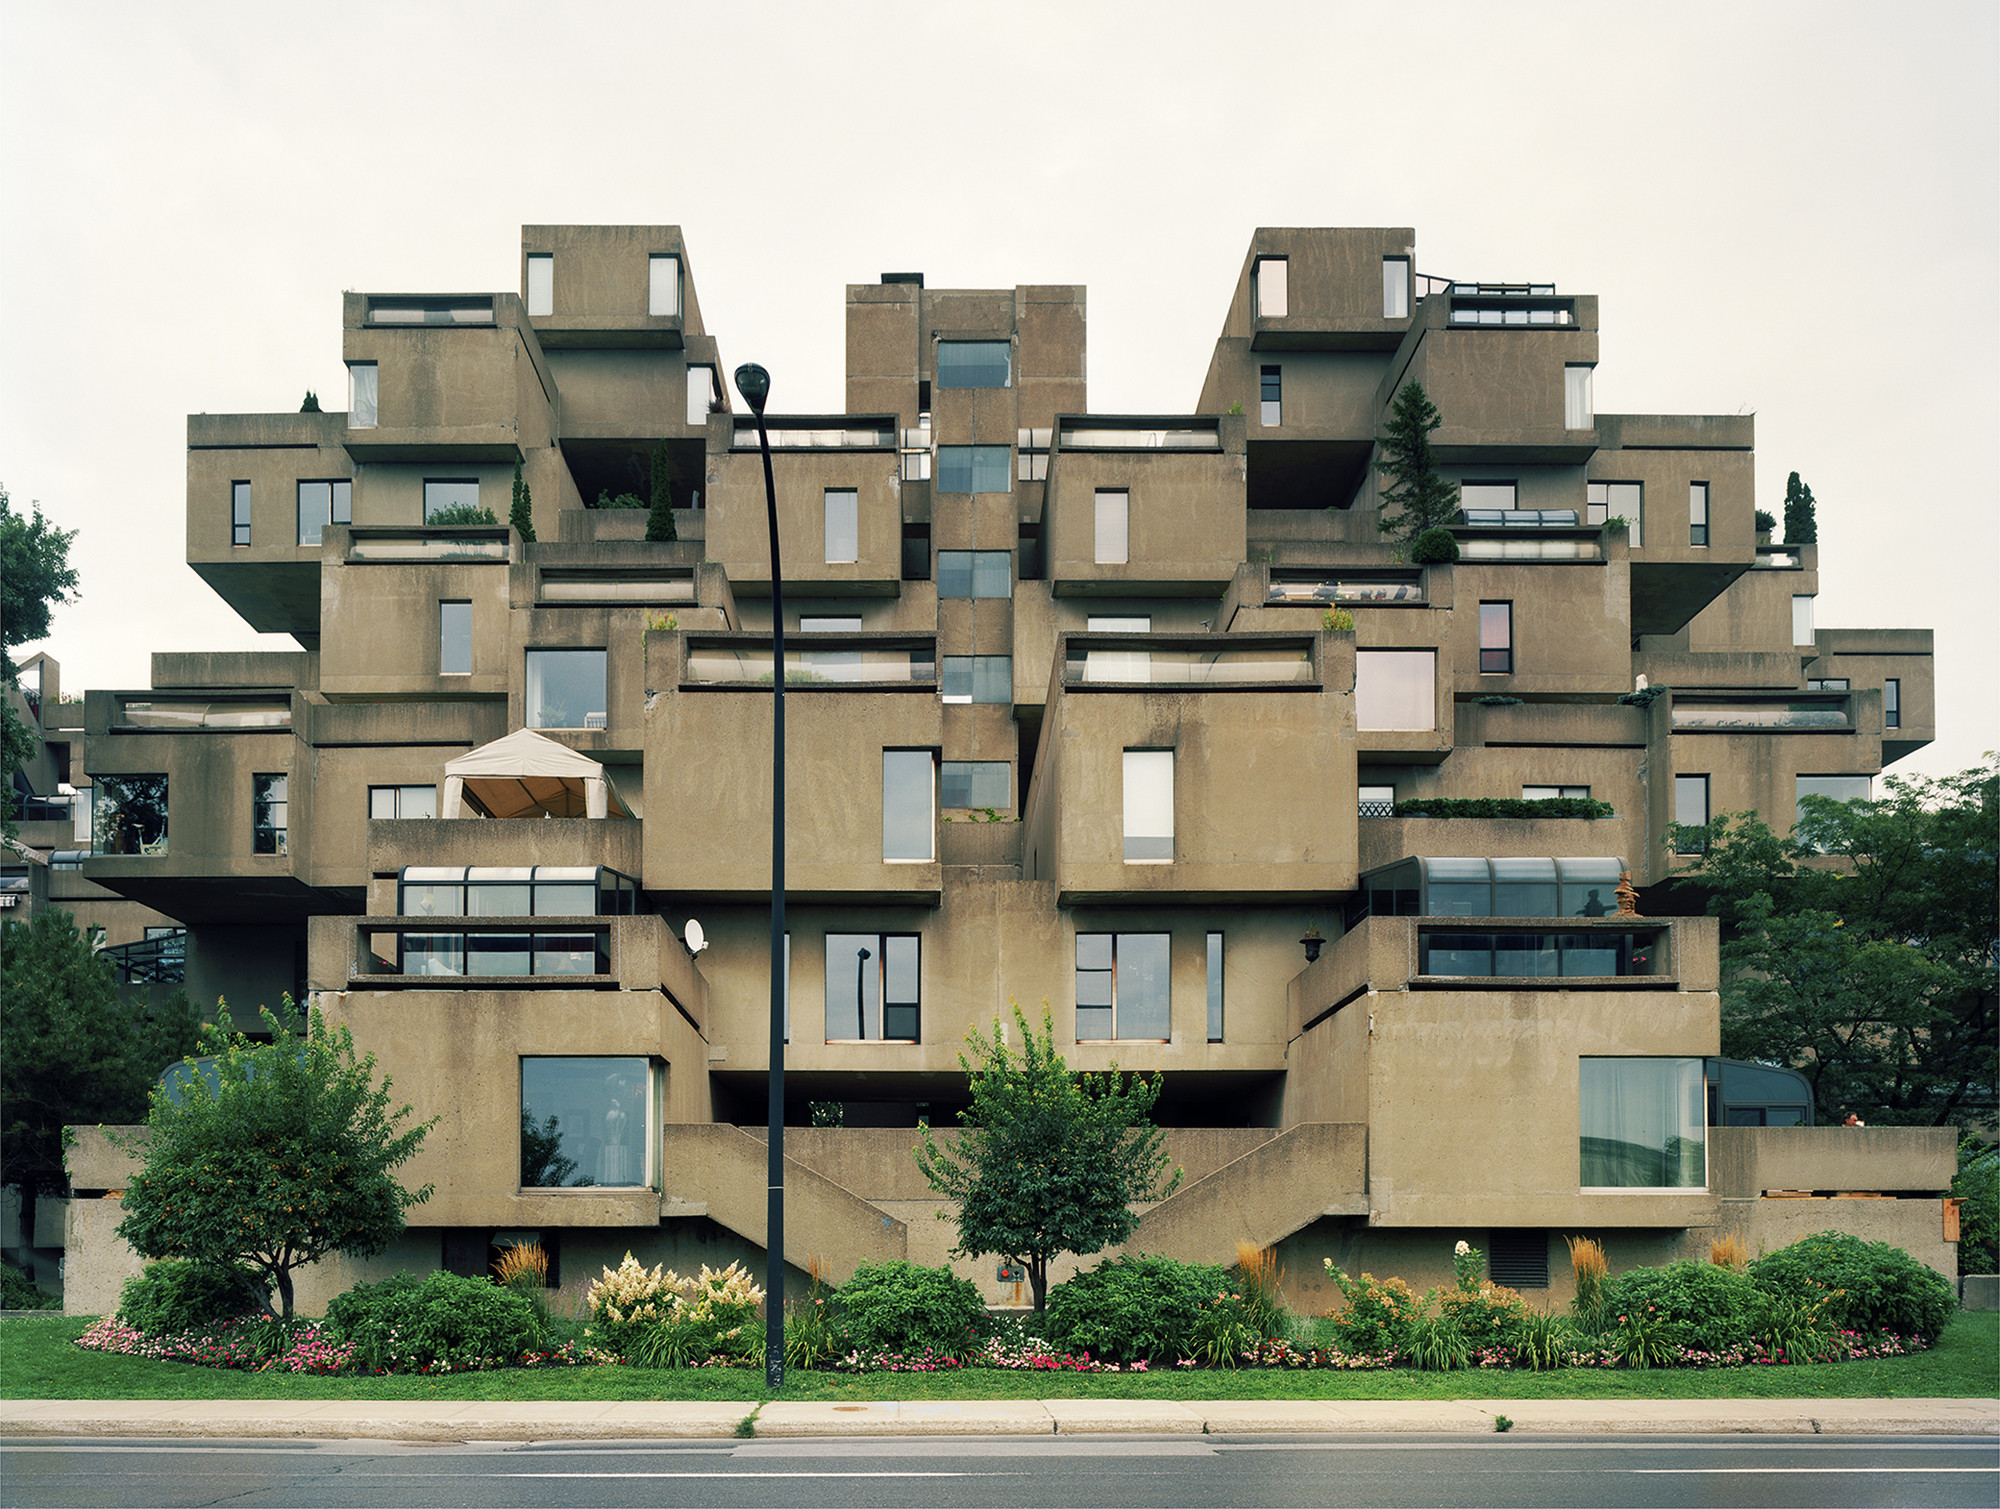 Gallery of ad classics habitat 67 safdie architects 4 for Habitat 67 architecture